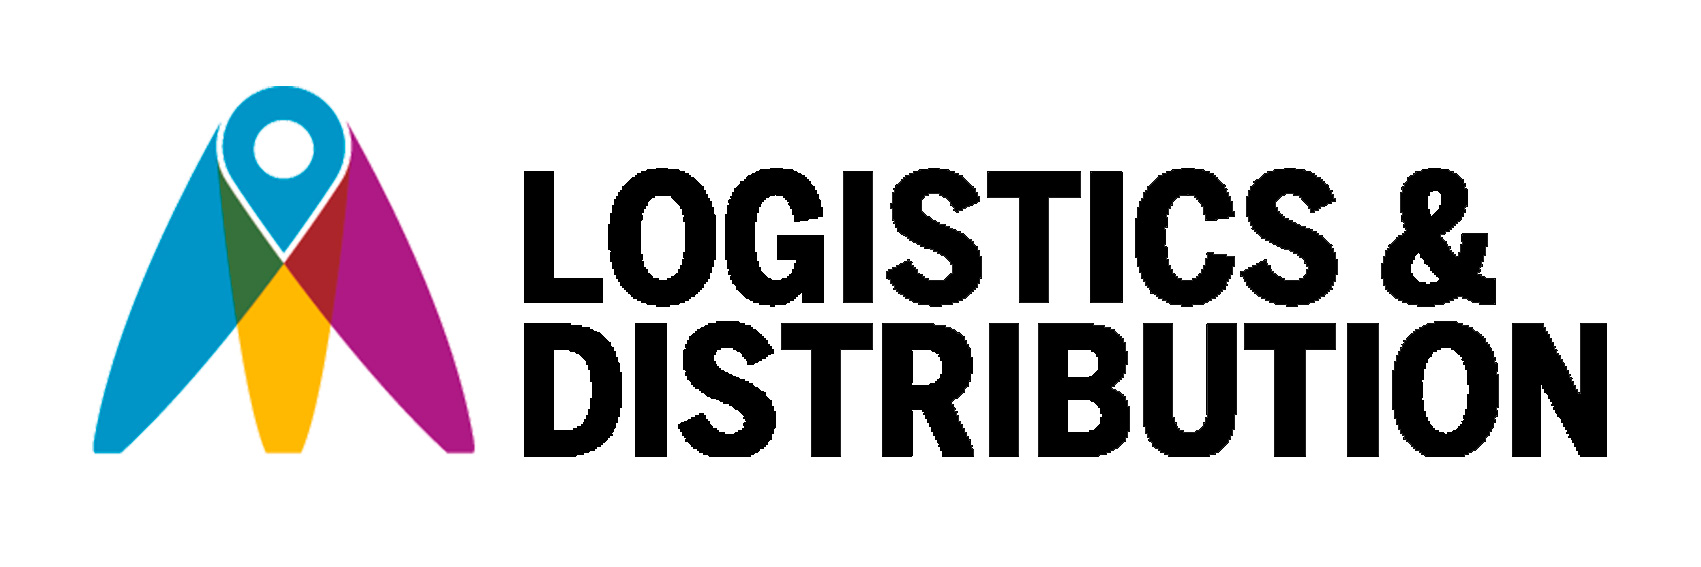 Logistics & Distribution 2019